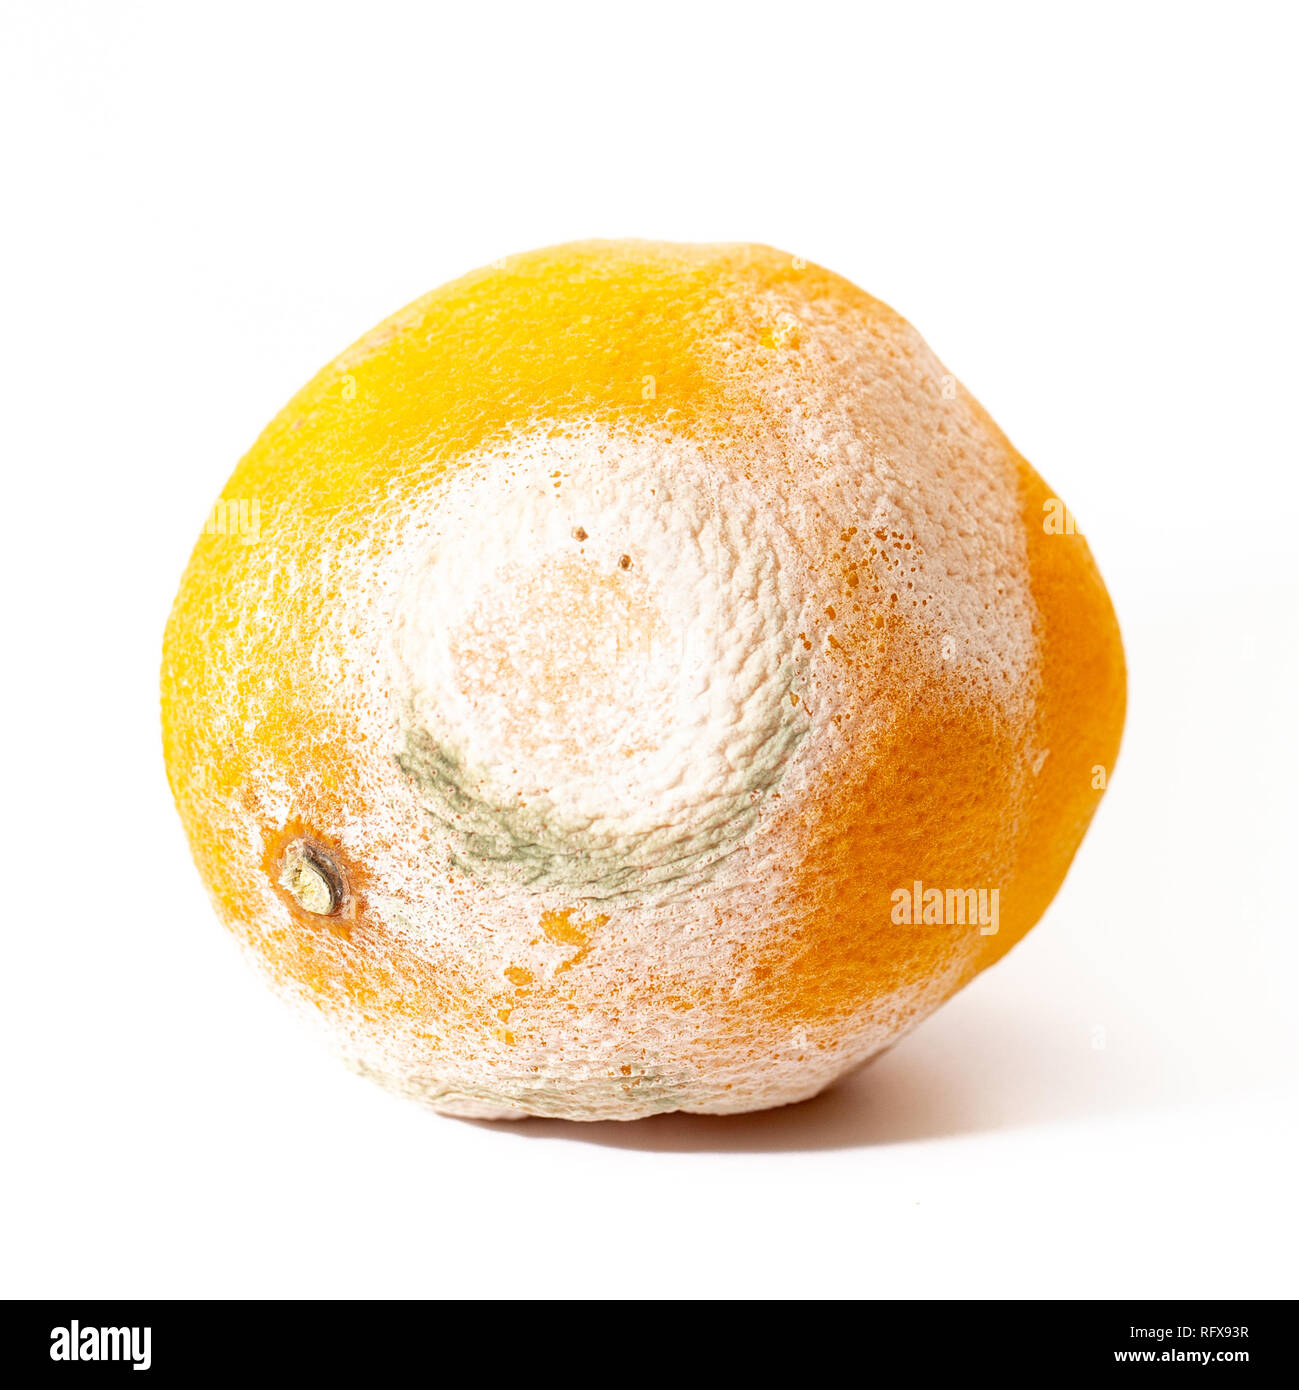 A spoiled orange with white and green mold, on a white  - Stock Image